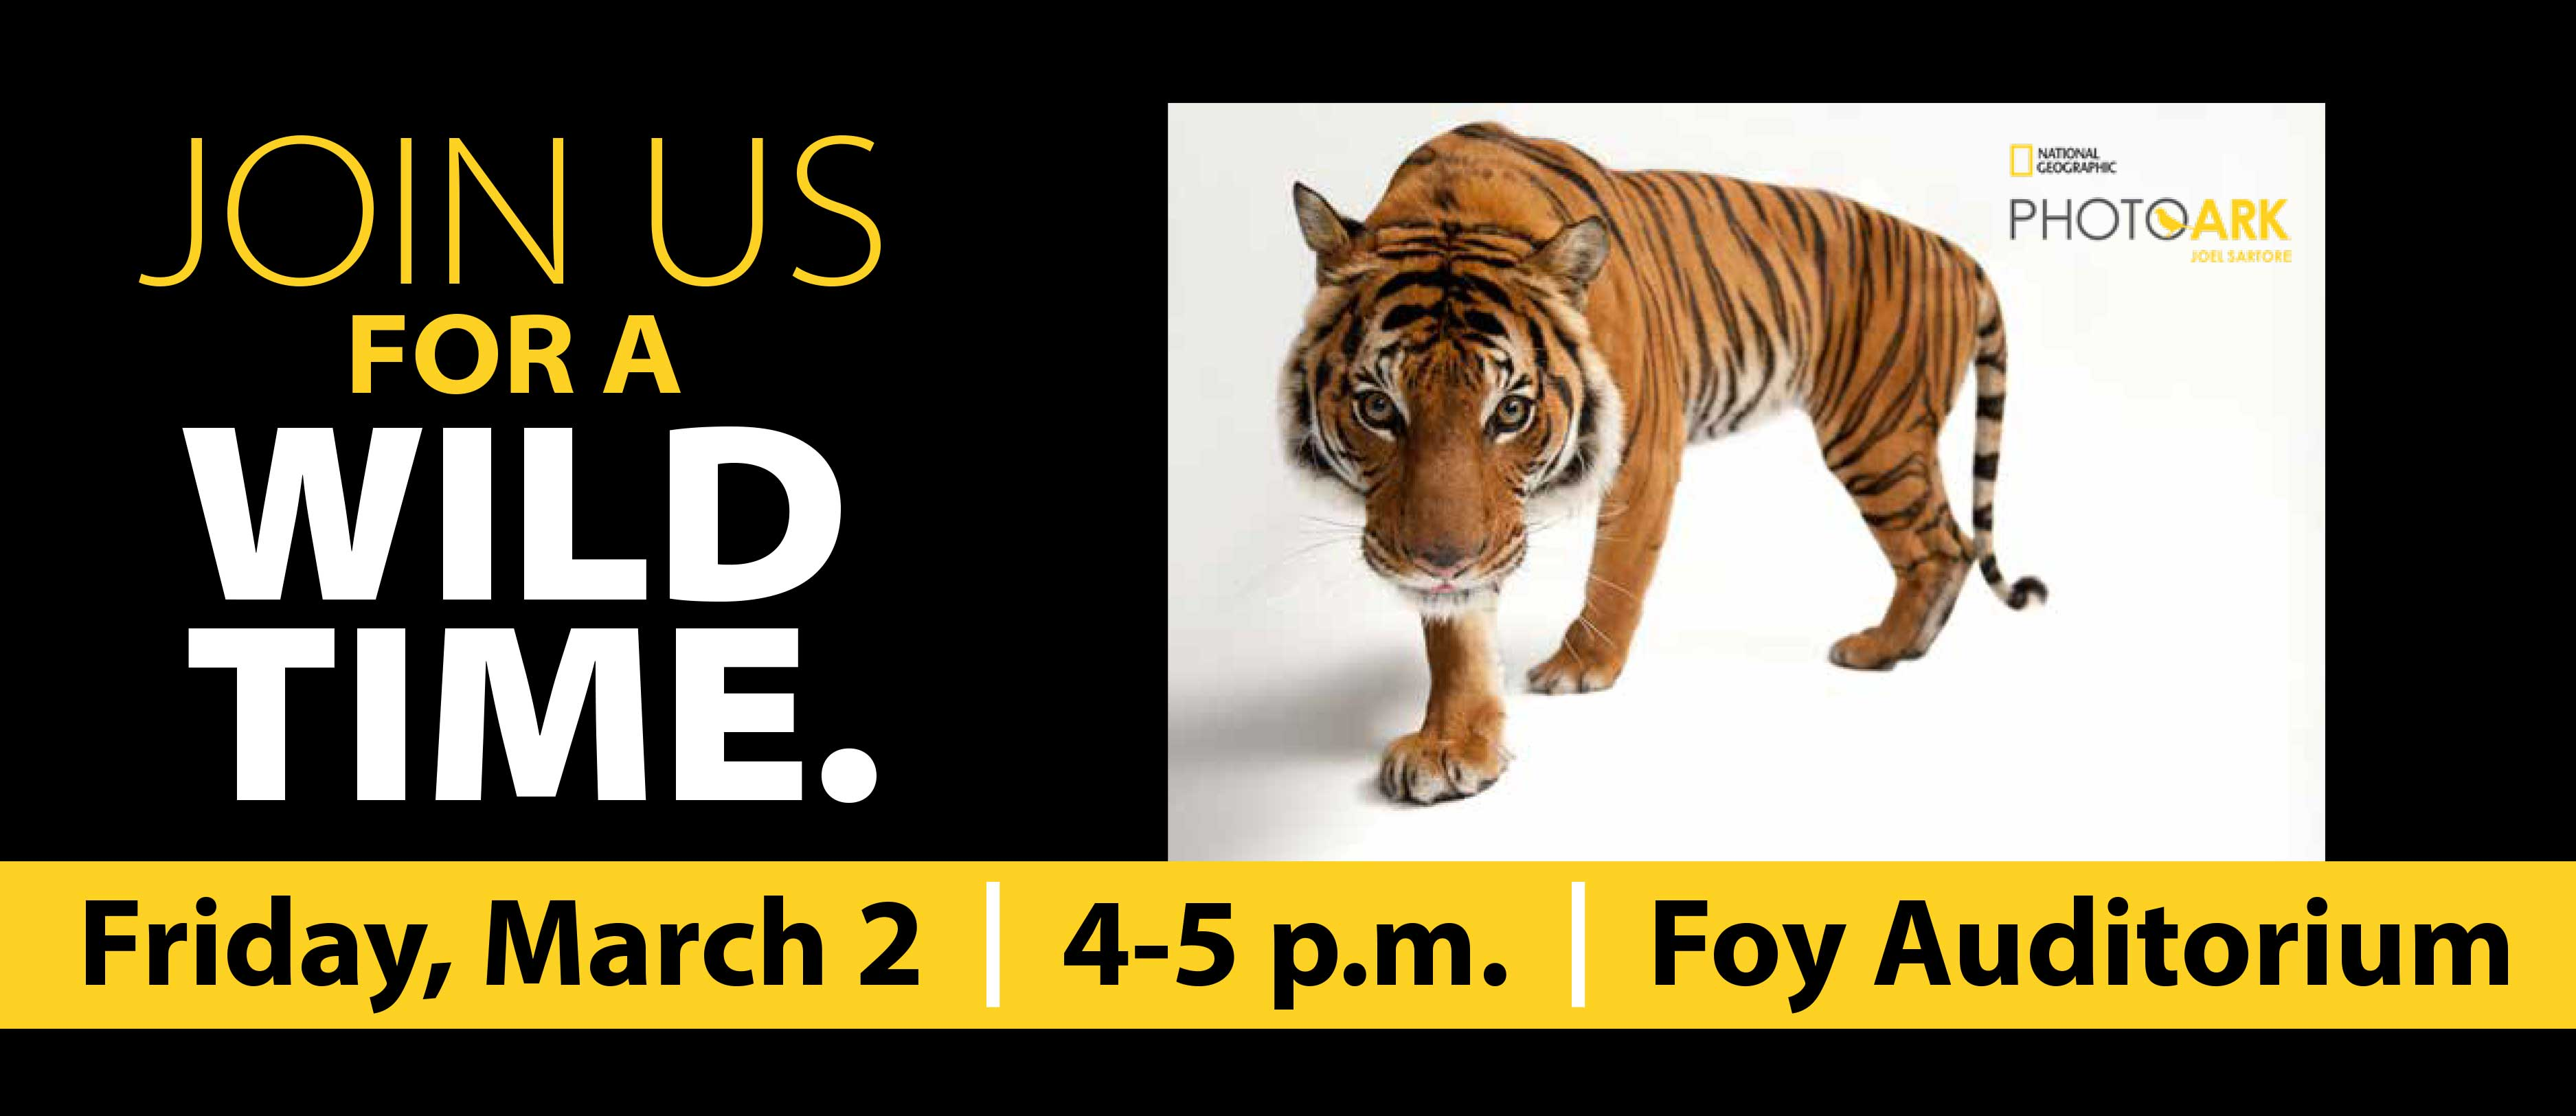 Graphic with information of March 2 lecture with Joel Sartore. © Photo by Joel Sartore/National Geographic Photo Ark. An endangered Malayan tiger, Panthera tigris jacksoni, at Omaha Henry Doorly Zoo. For more go to NatGeoPhotoArk.org.